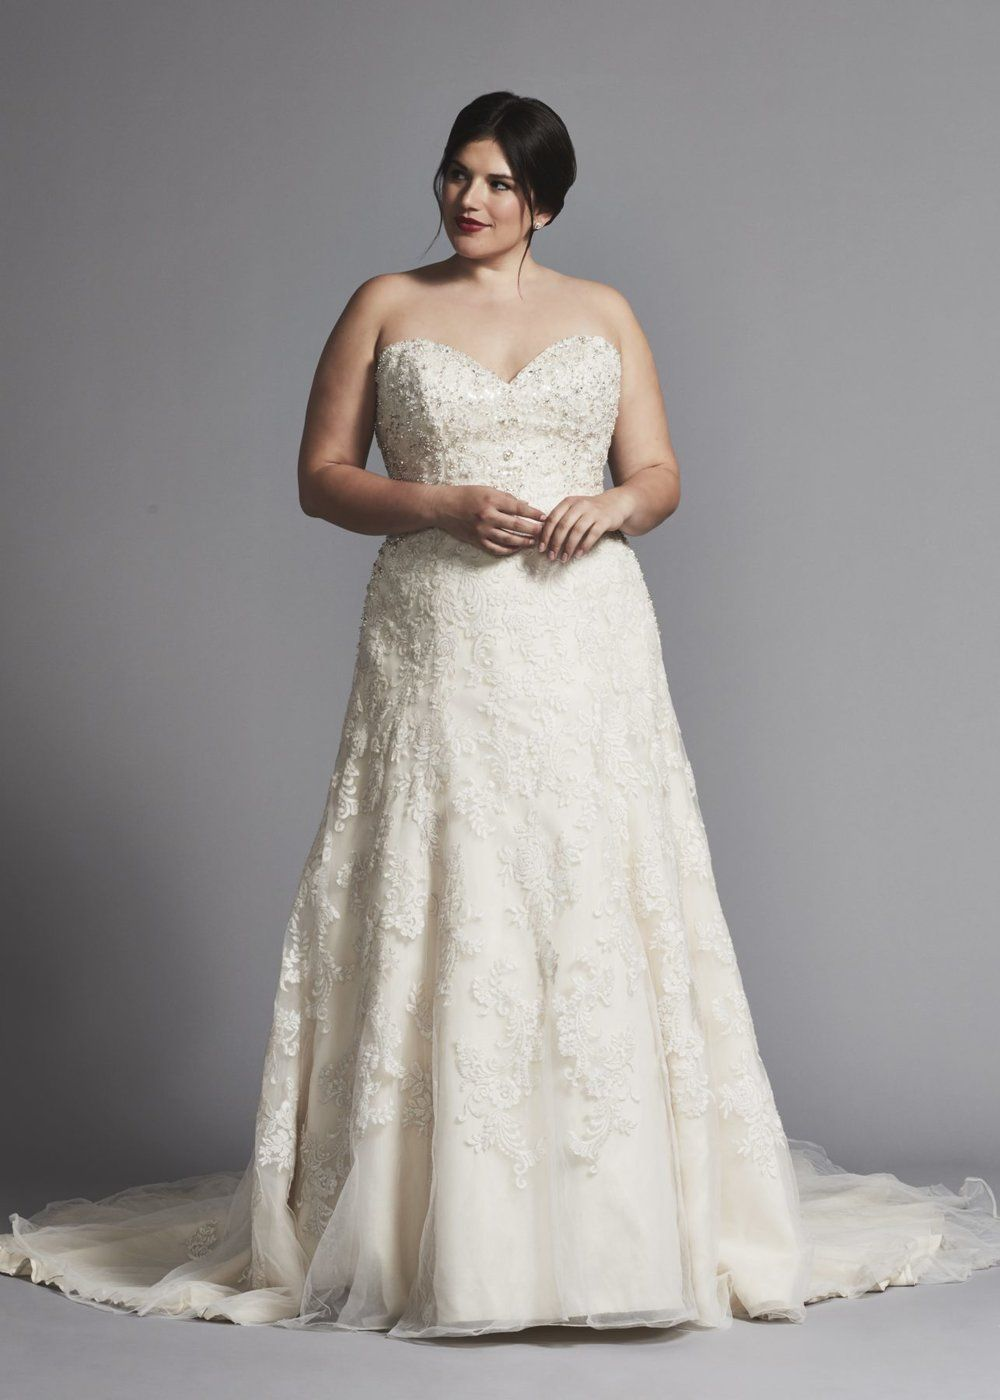 Size 22 wedding dress   Designer PlusSize Wedding Dresses That Prove Your Body is